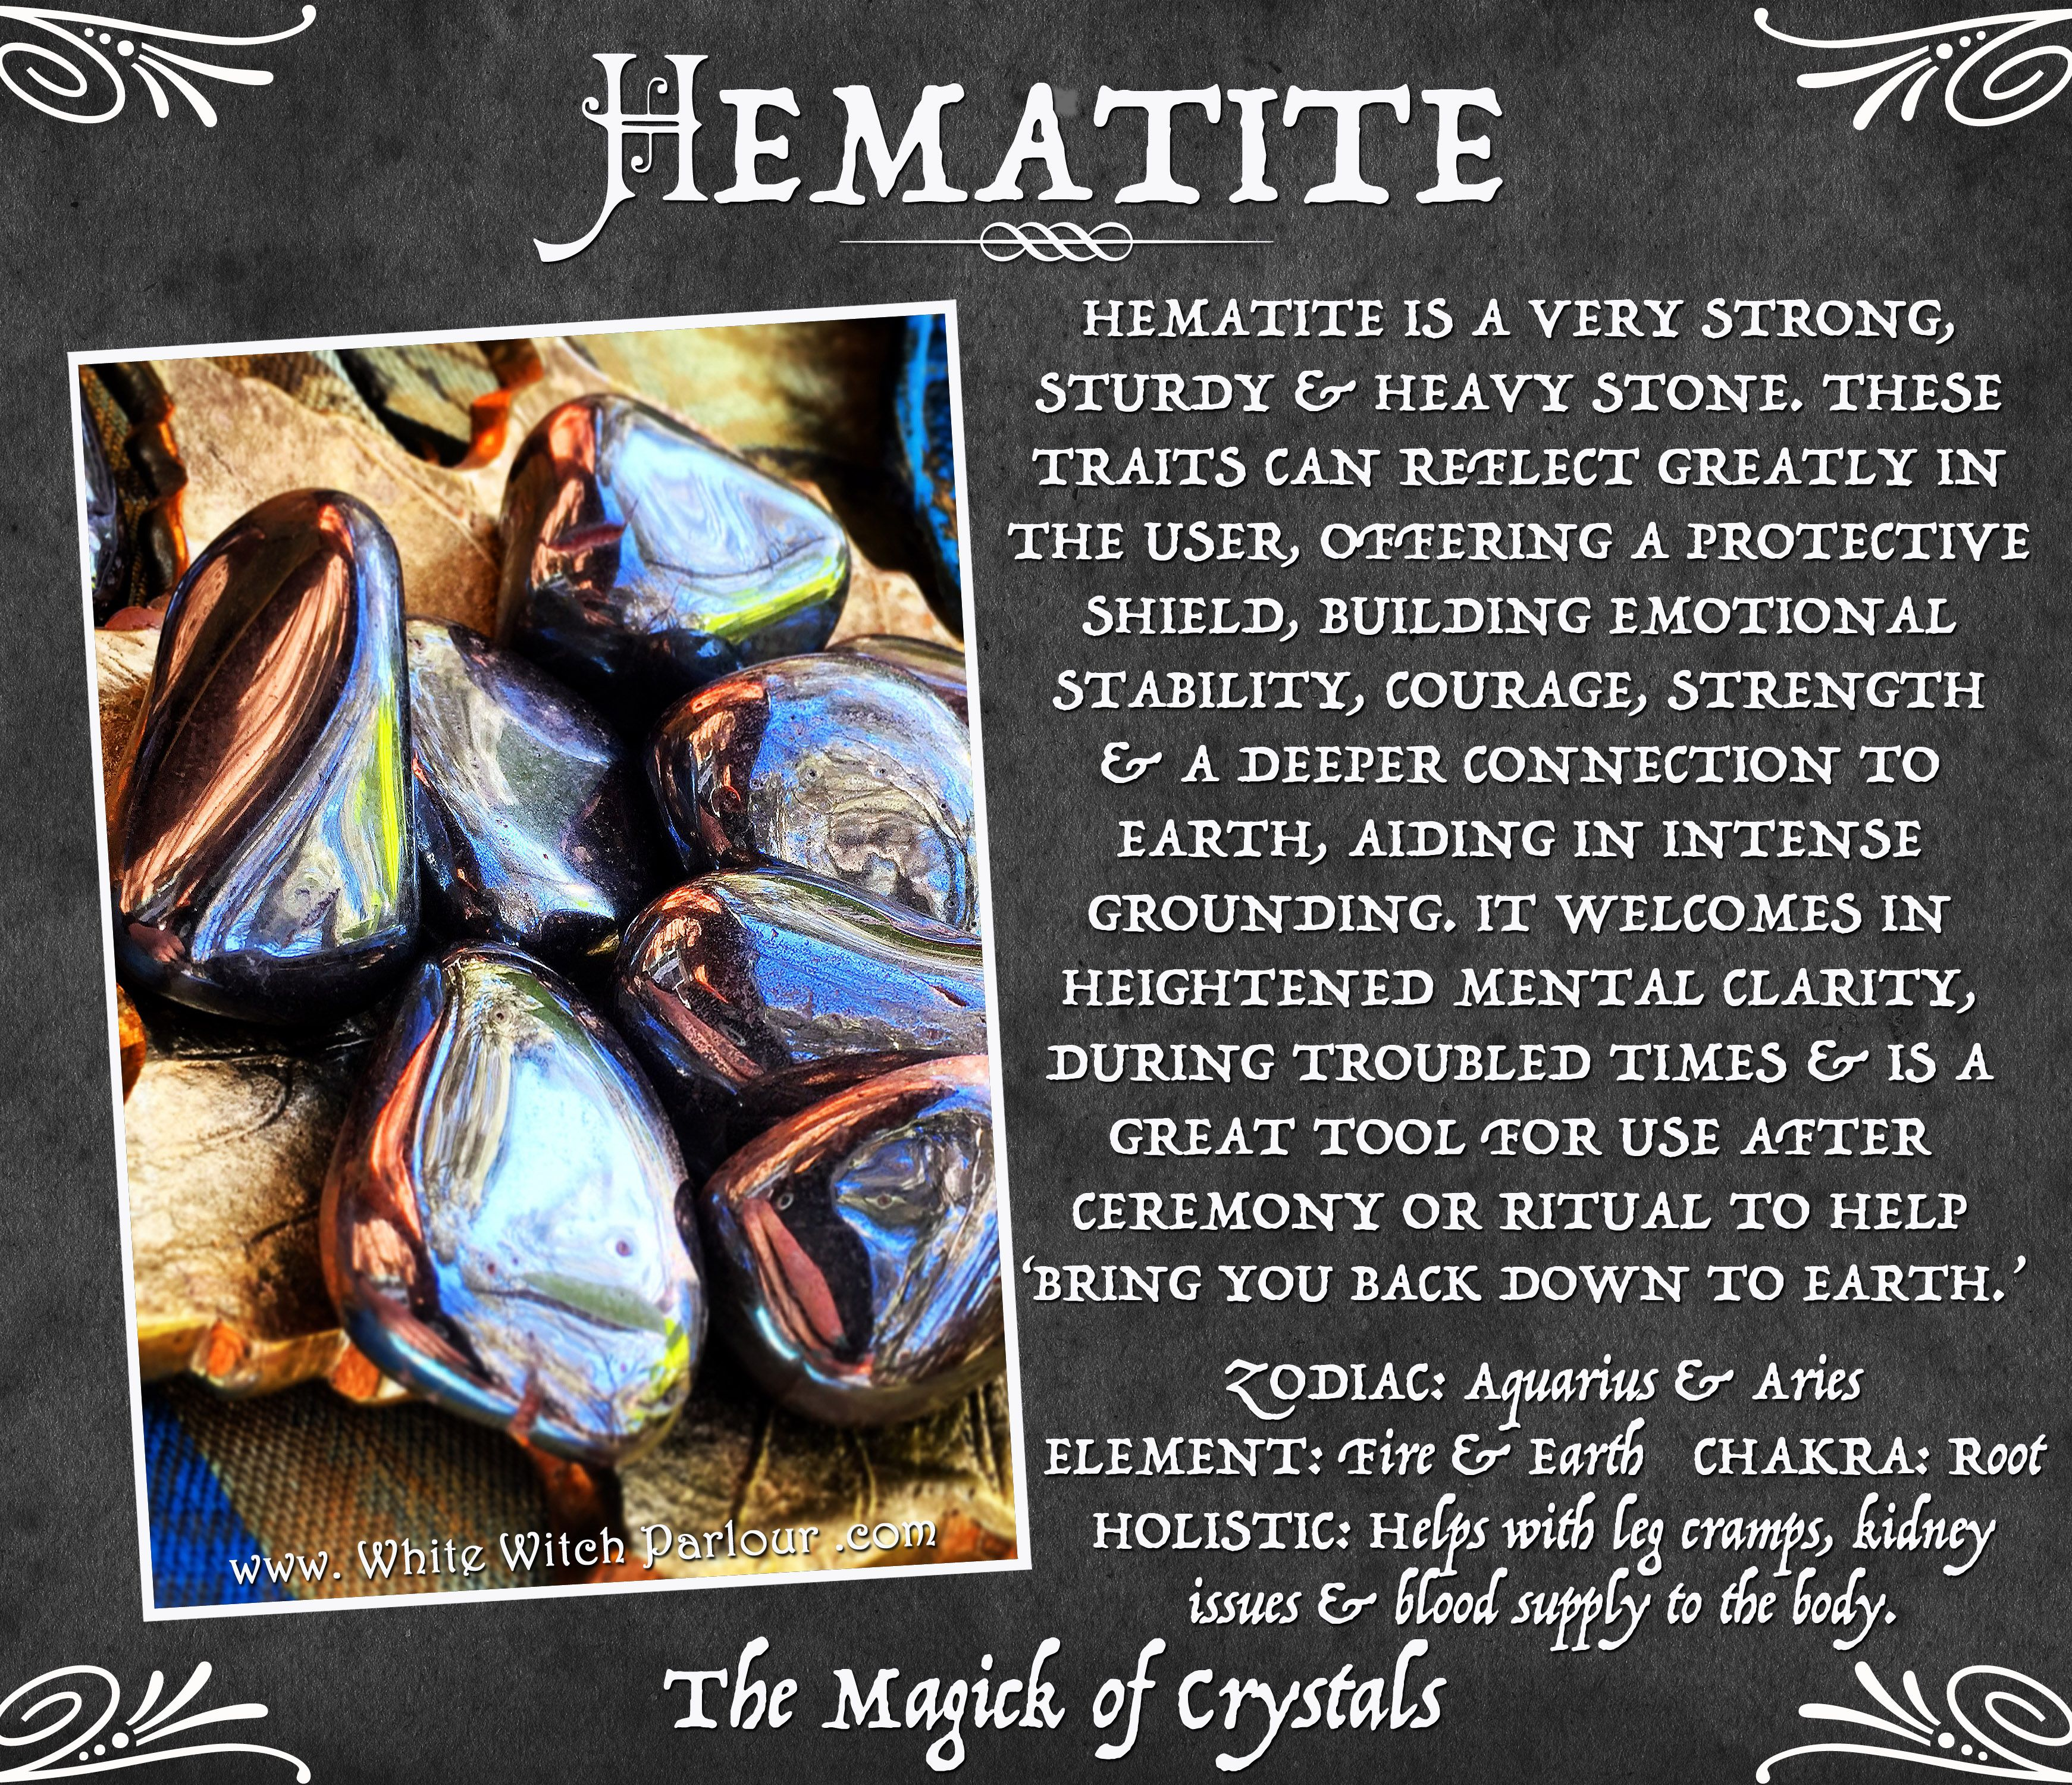 Hematite tumbled crystal for balance emotional stability hematite tumbled crystal for balance emotional stability grounding metaphysical wicca witch spells courage whitewitchparlour fandeluxe Images